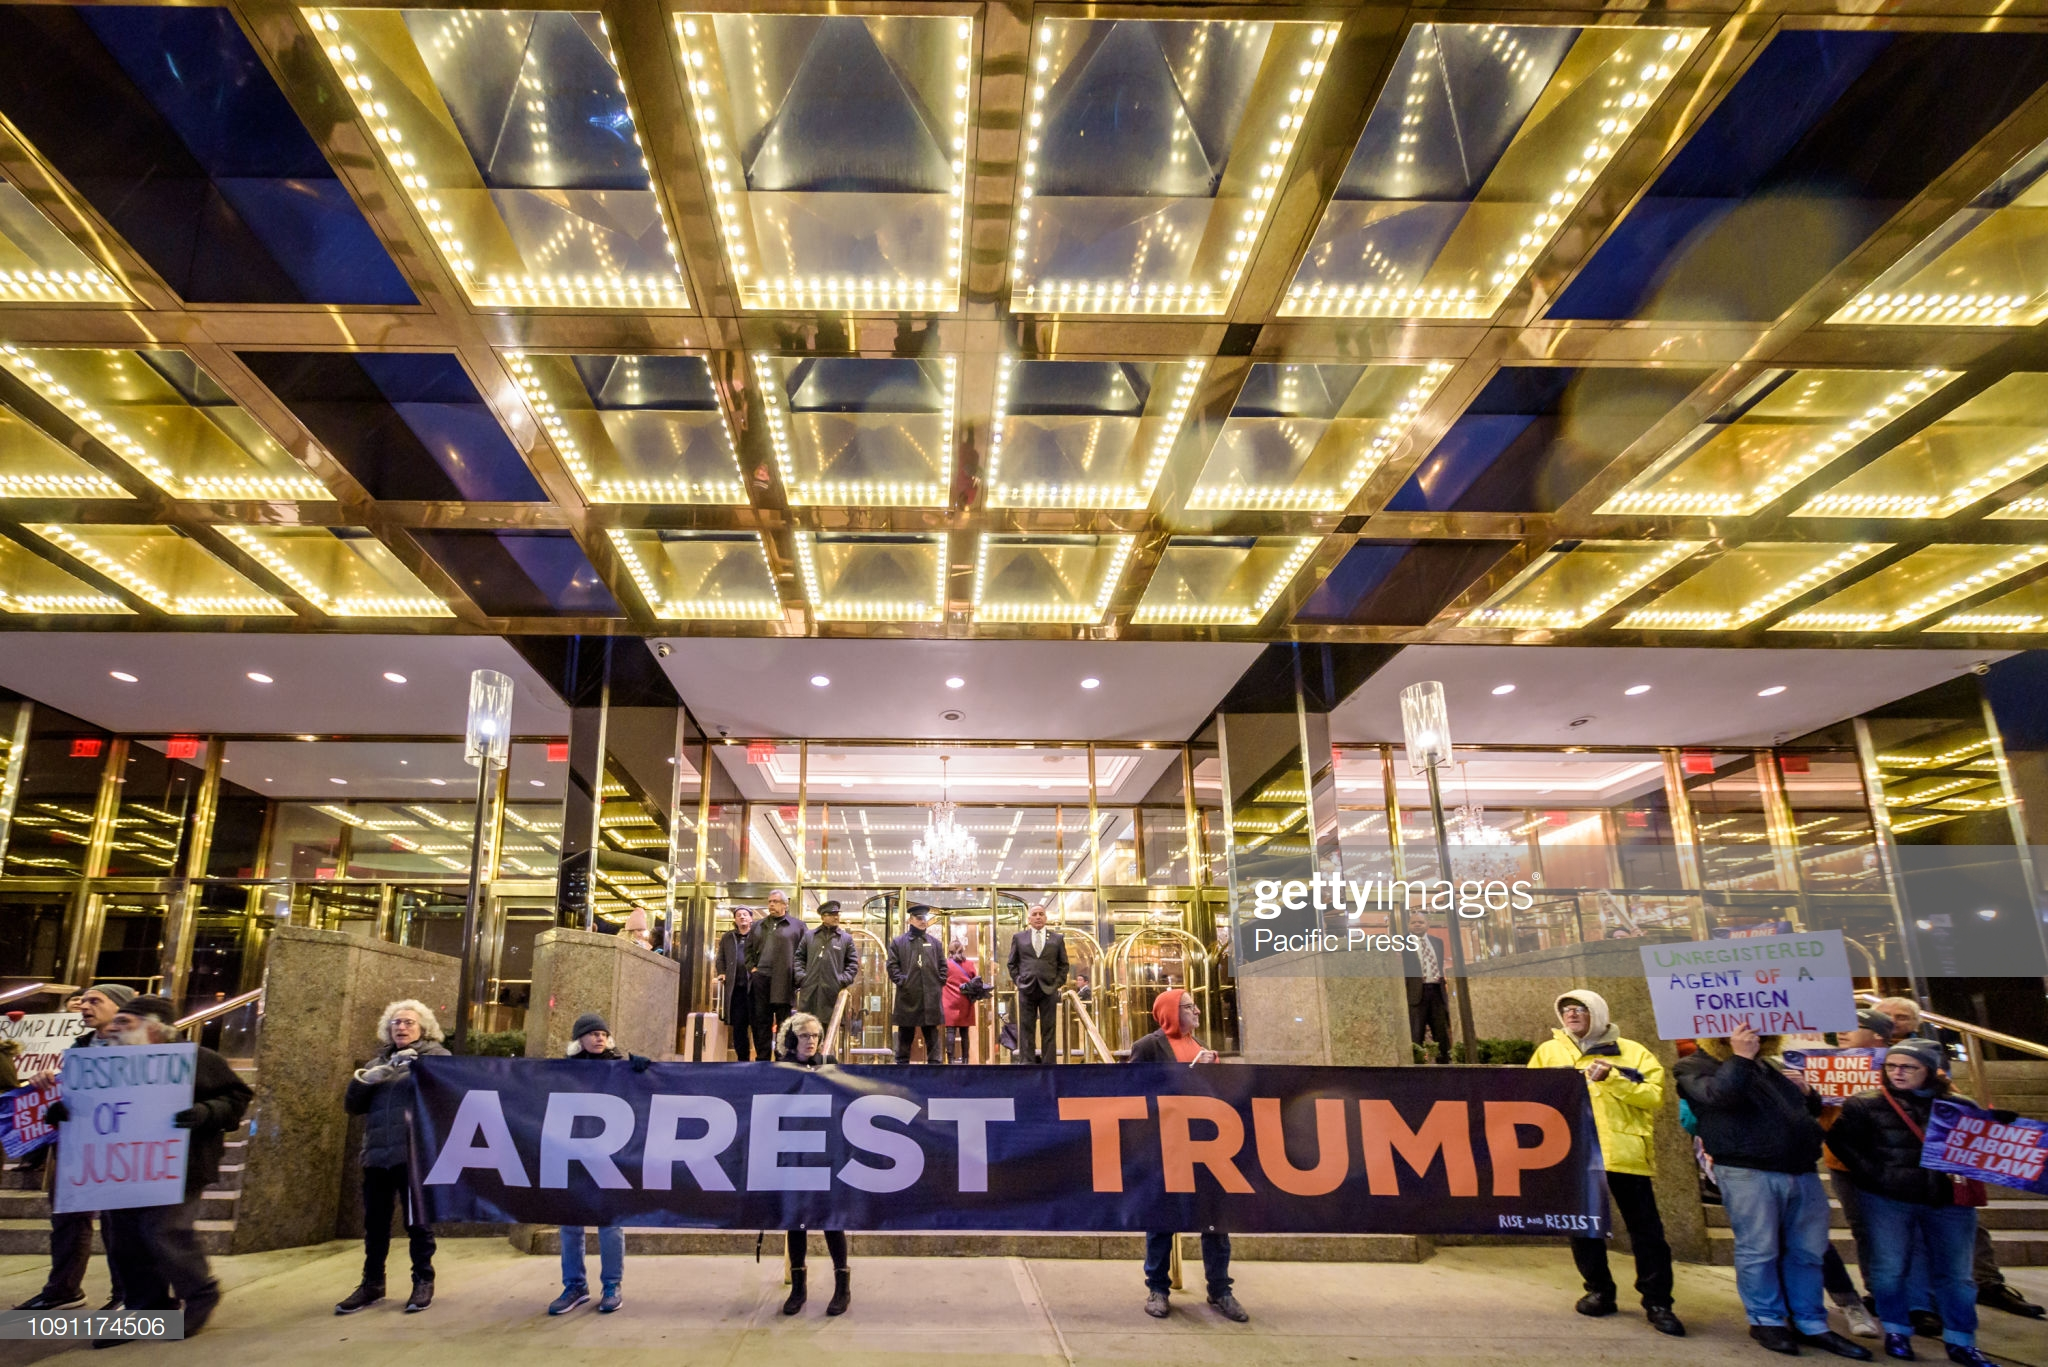 "TRUMP INTERNATIONAL HOTEL AT COLUMBUS CIRCLE, NEW YORK, UNITED STATES - 2019/01/29: Members of the activist group Rise and Resist held an ""Arrest Trump"" protest outside the Trump International Hotel at Columbus Circle in Manhattan the day when the State of the Union was supposed to be delivered by Trump before the government shutdown. Rise and Resist demands the arrest of Trump for his multiple serious crimes against the people of the United States and other countries. (Photo by Erik McGregor/Pacific Press/LightRocket via Getty Images)"